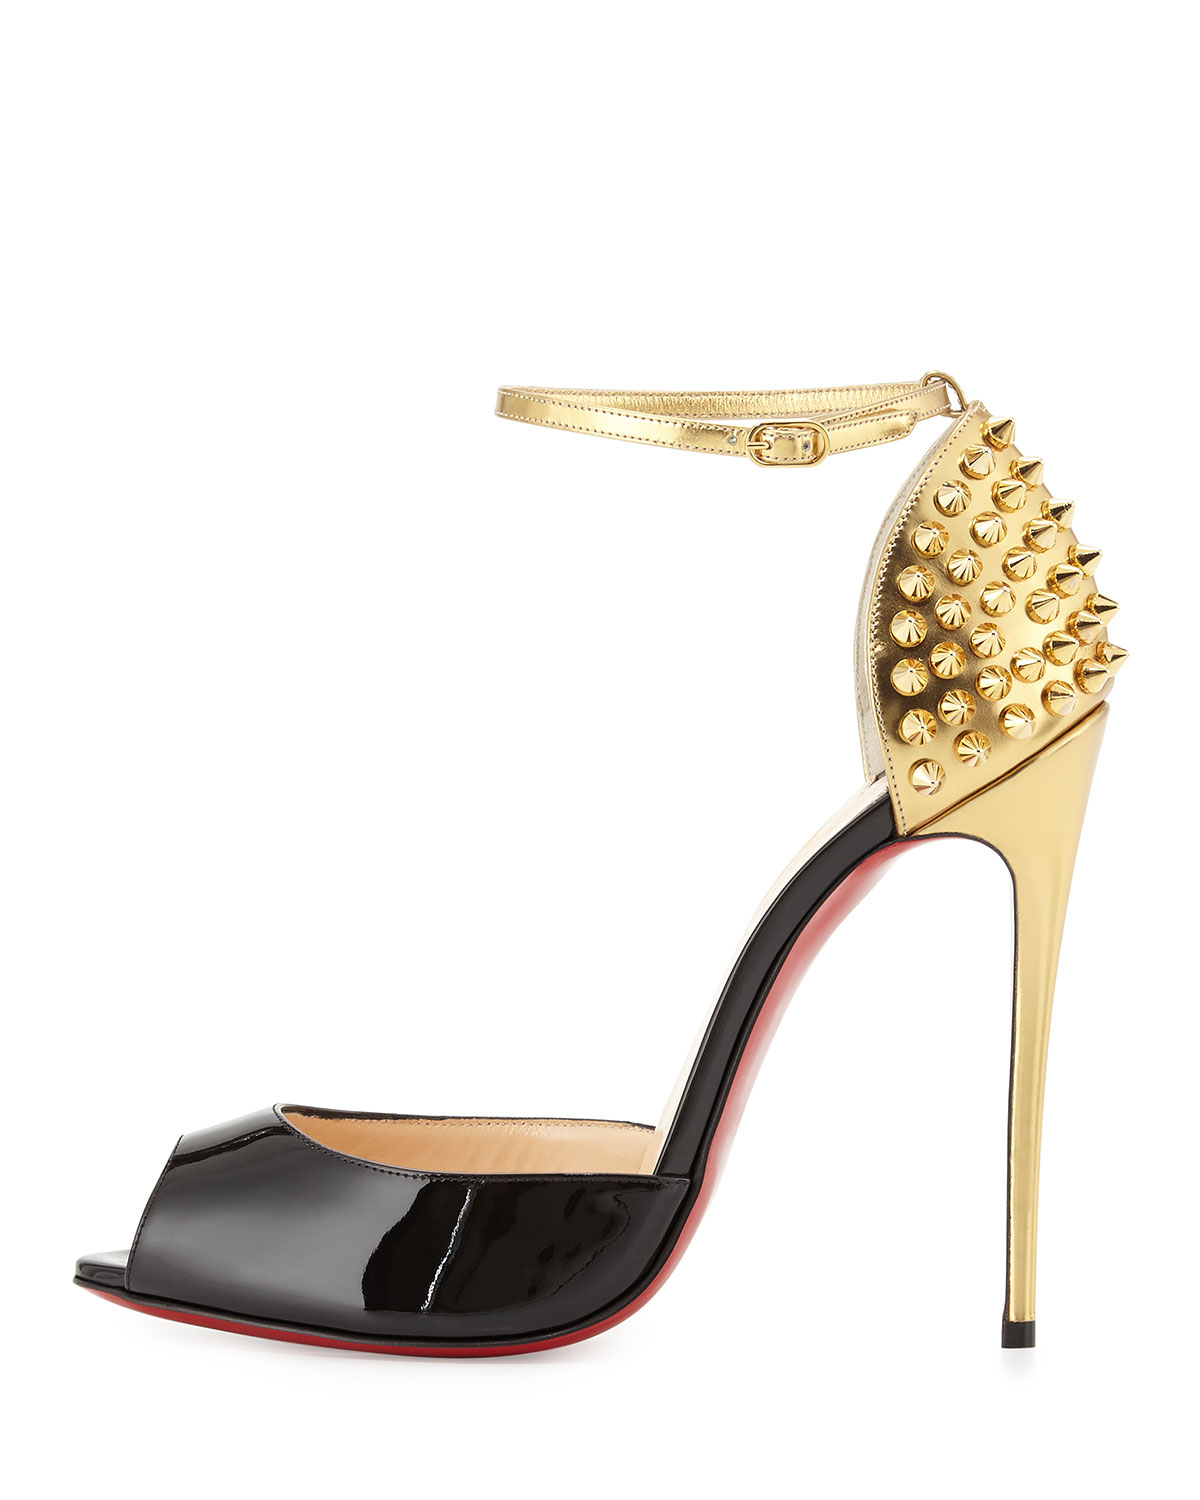 christian louboutin red and gold spiked heels